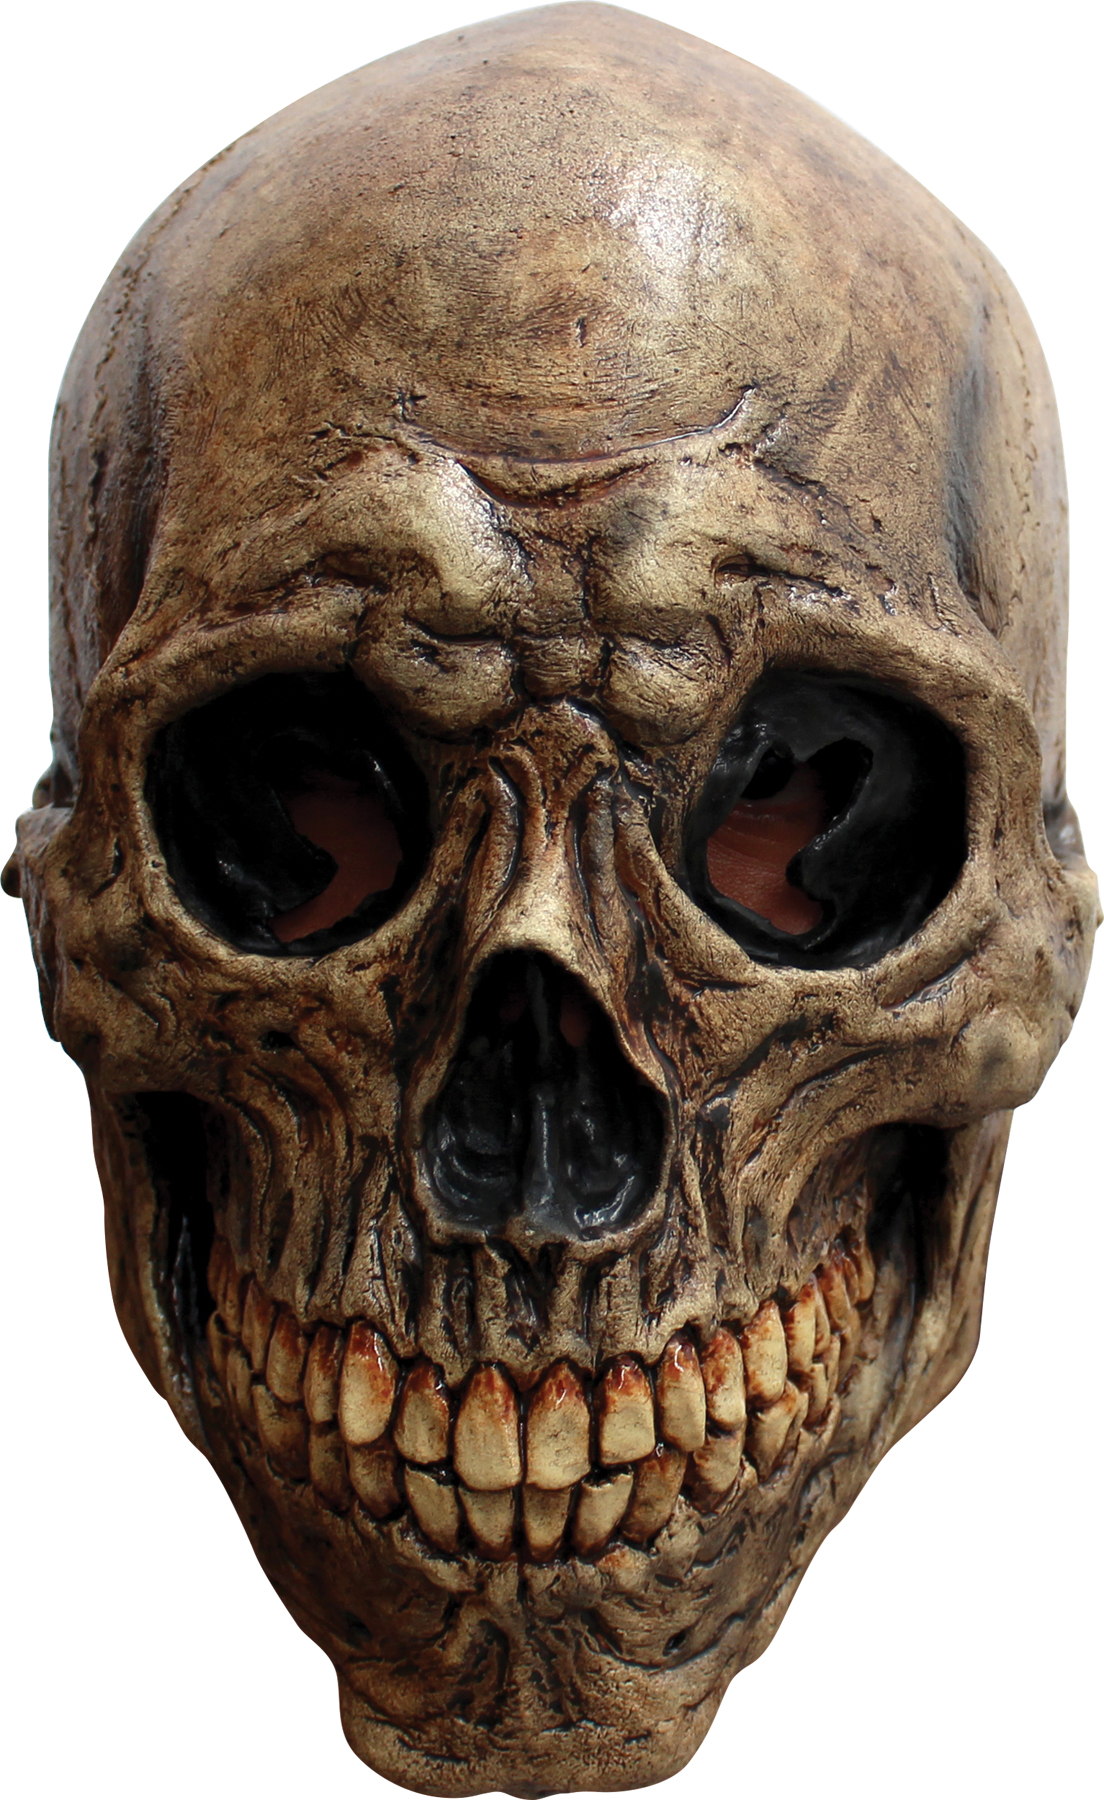 About >> Ancient Skull Mask